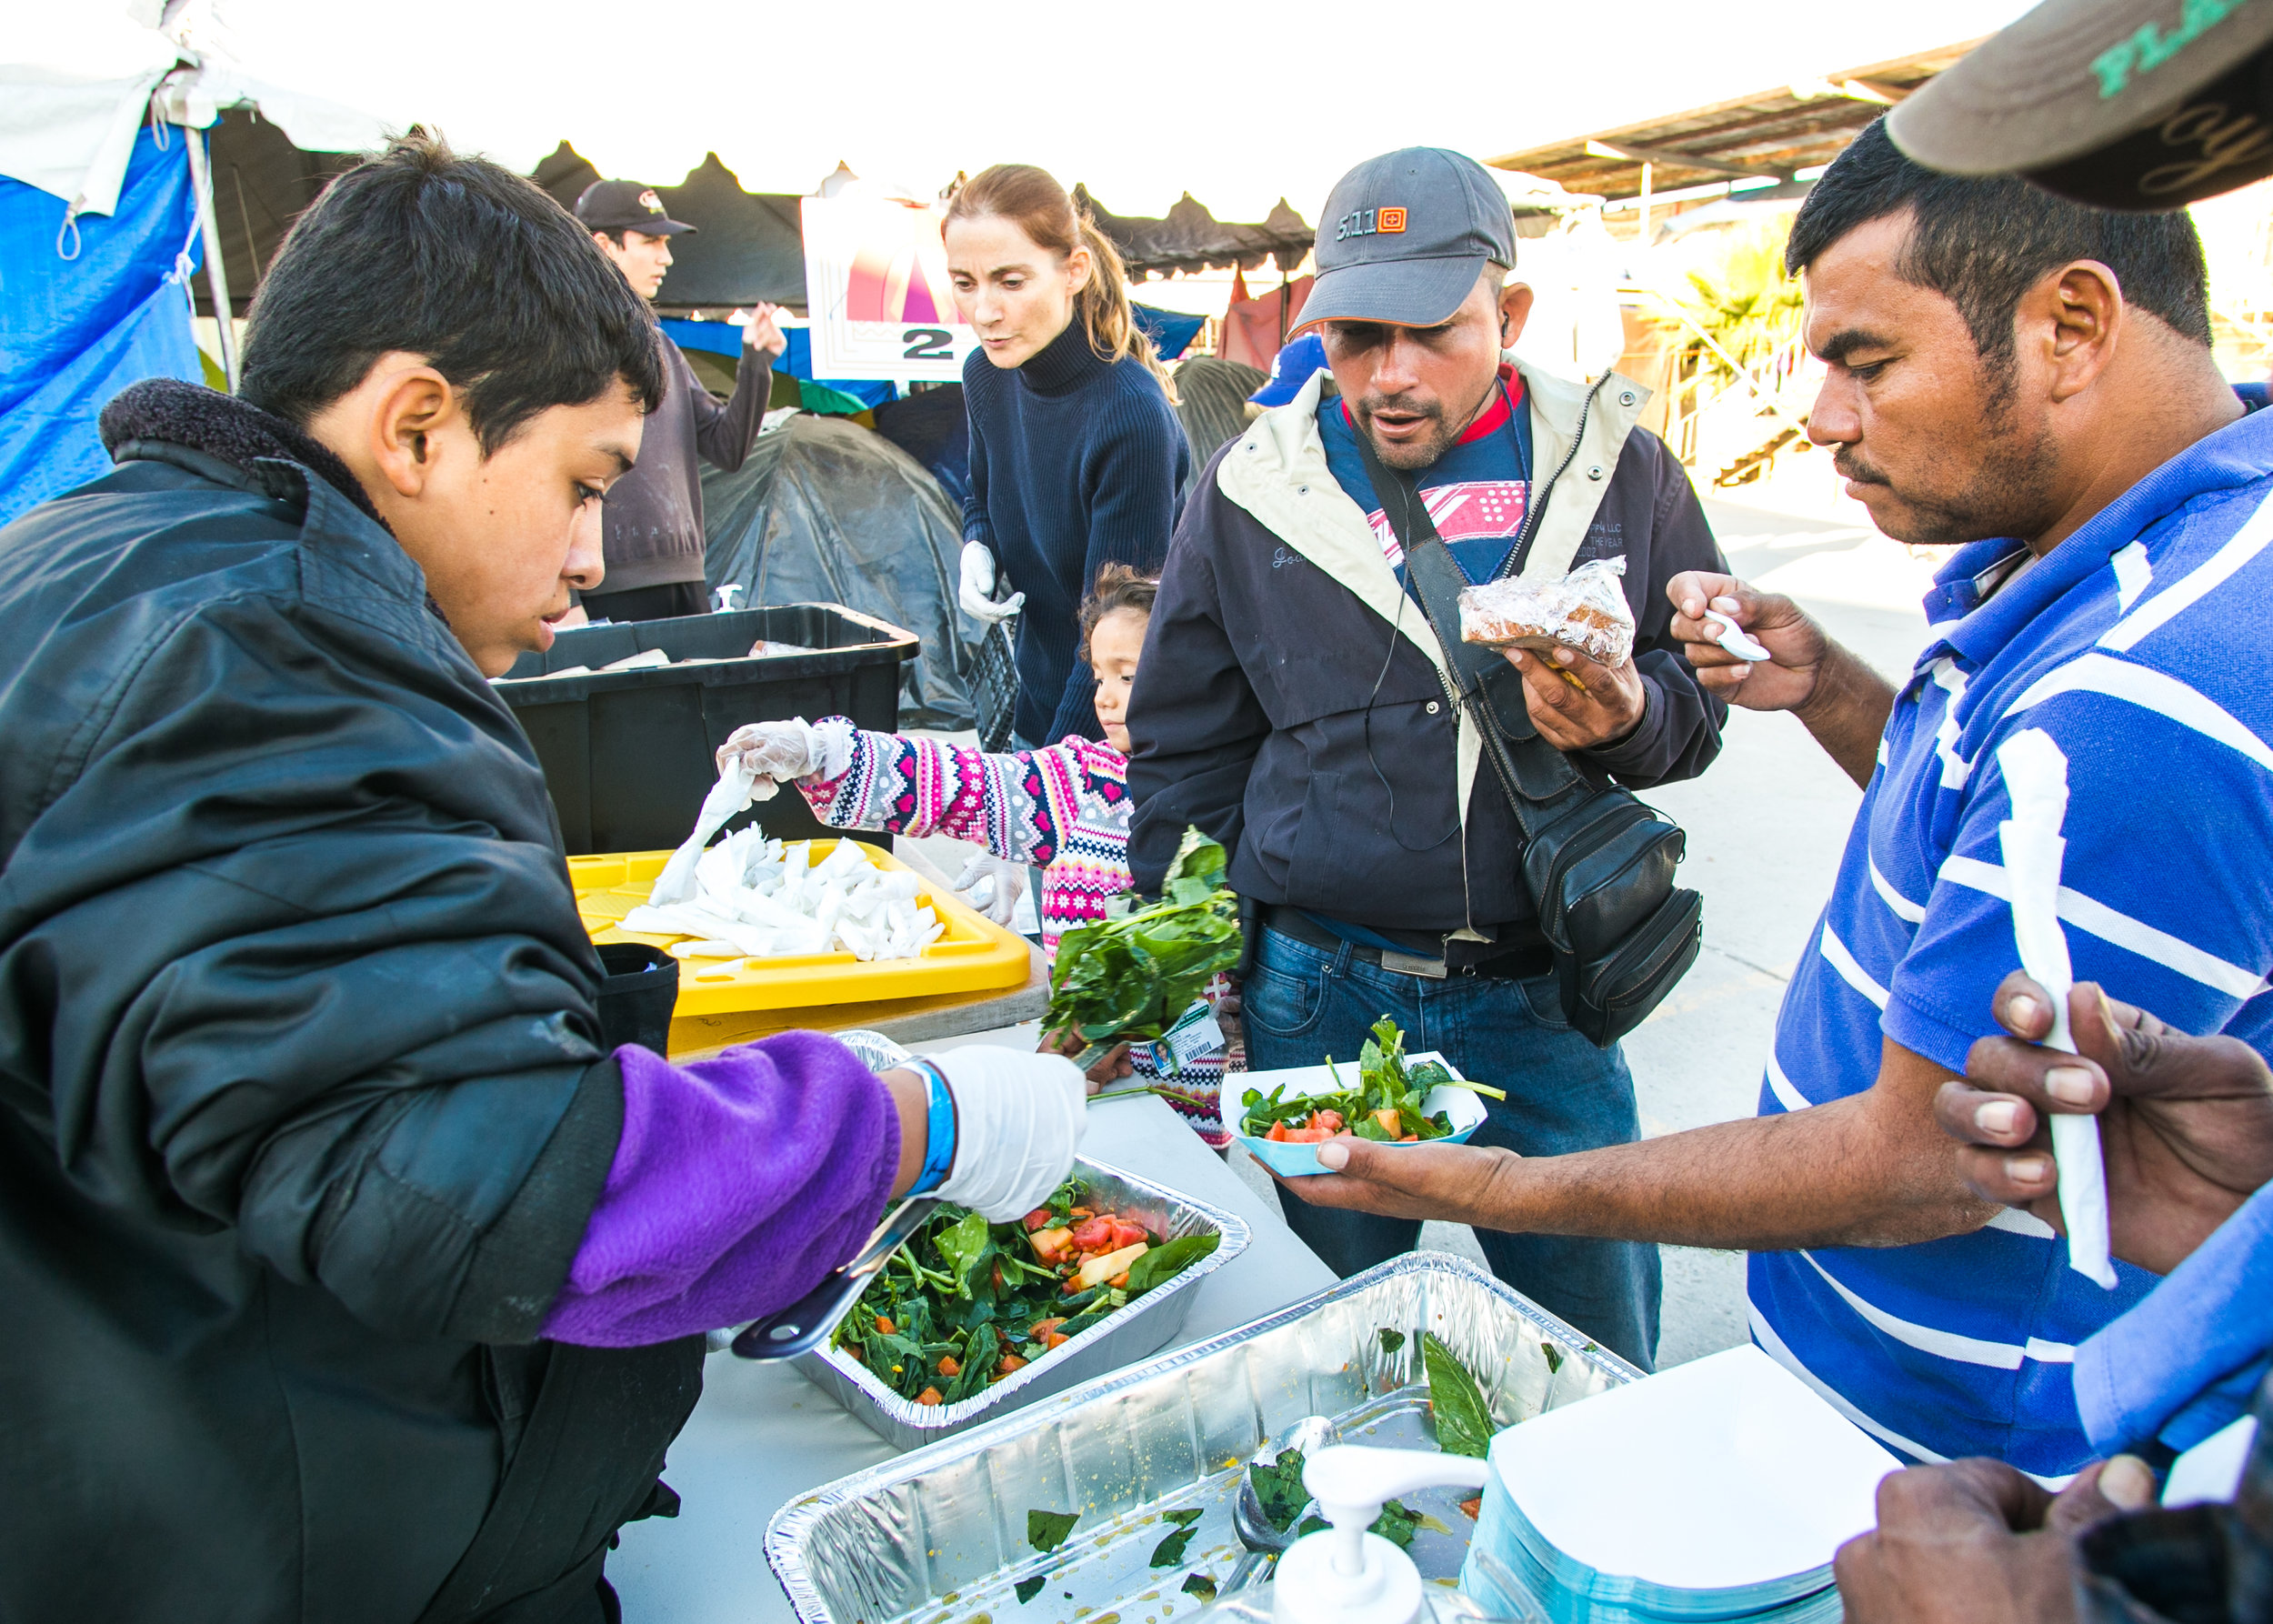 A volunteer serves lunch to over 1,500 refugees at the Barretal refugee compound. Each day, 5-6 children from the camp would assist World Central Kitchen with serving lunch. The goal of the program surrounds creating a sustainable refugee-operated kitchen in Tijuana to serve for months (or even years) to come. The recent influx in caravan activity has drawn mass media attention - but contrary to popular belief - refugees from Central America have been arriving in Tijuana for over a decade.